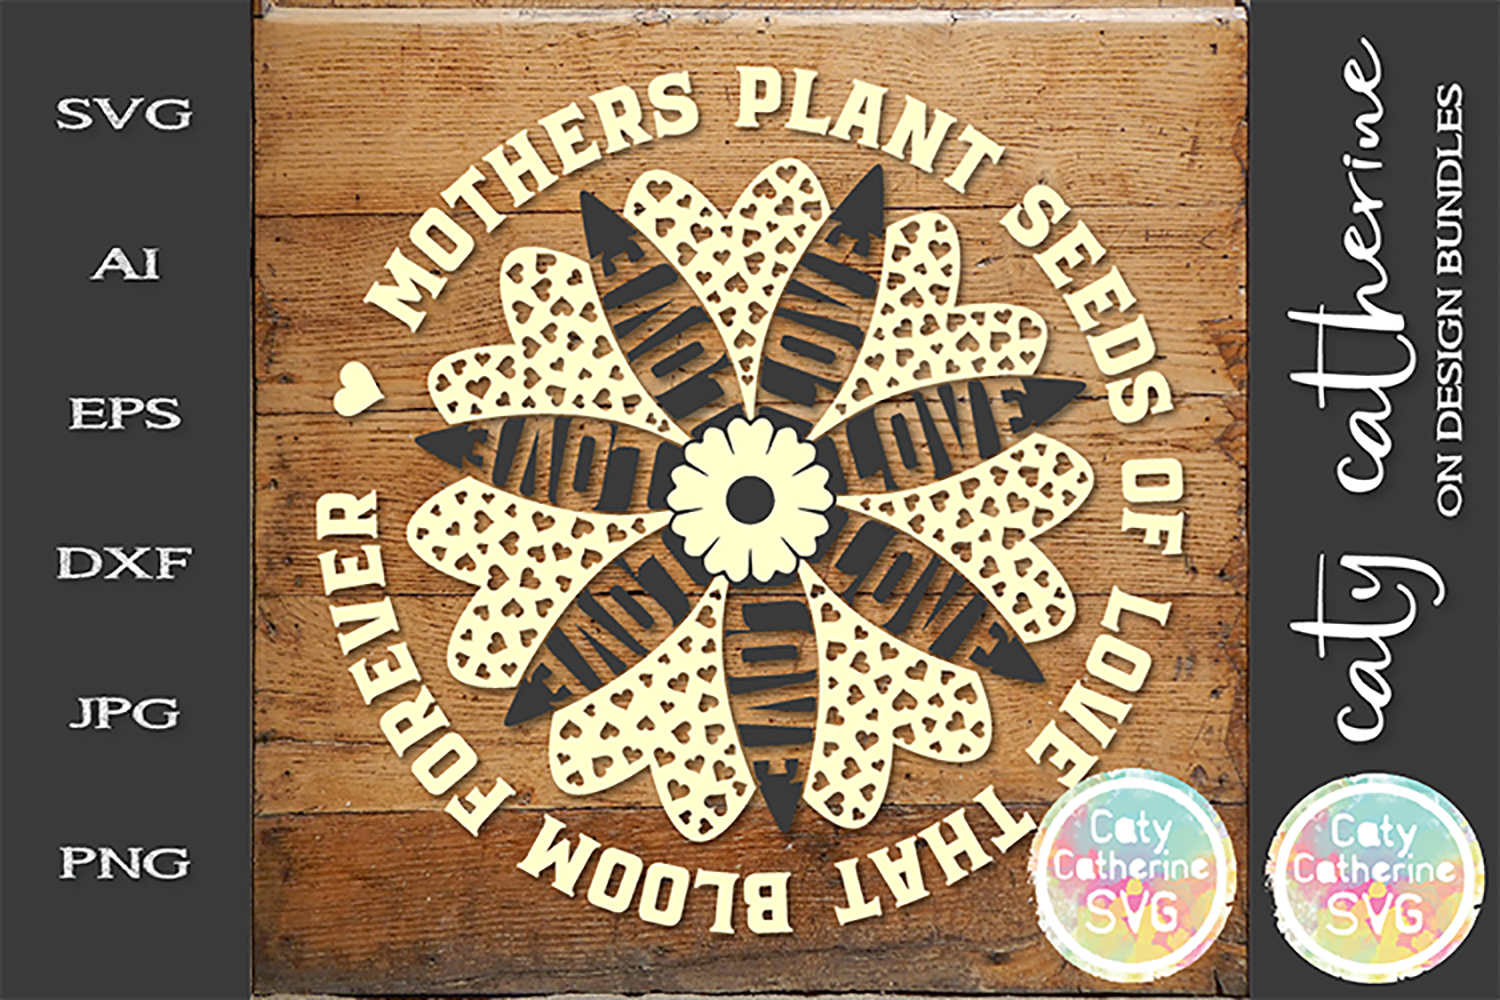 Mothers Plant Seeds Of Love That Bloom Forever SVG Cut example image 1